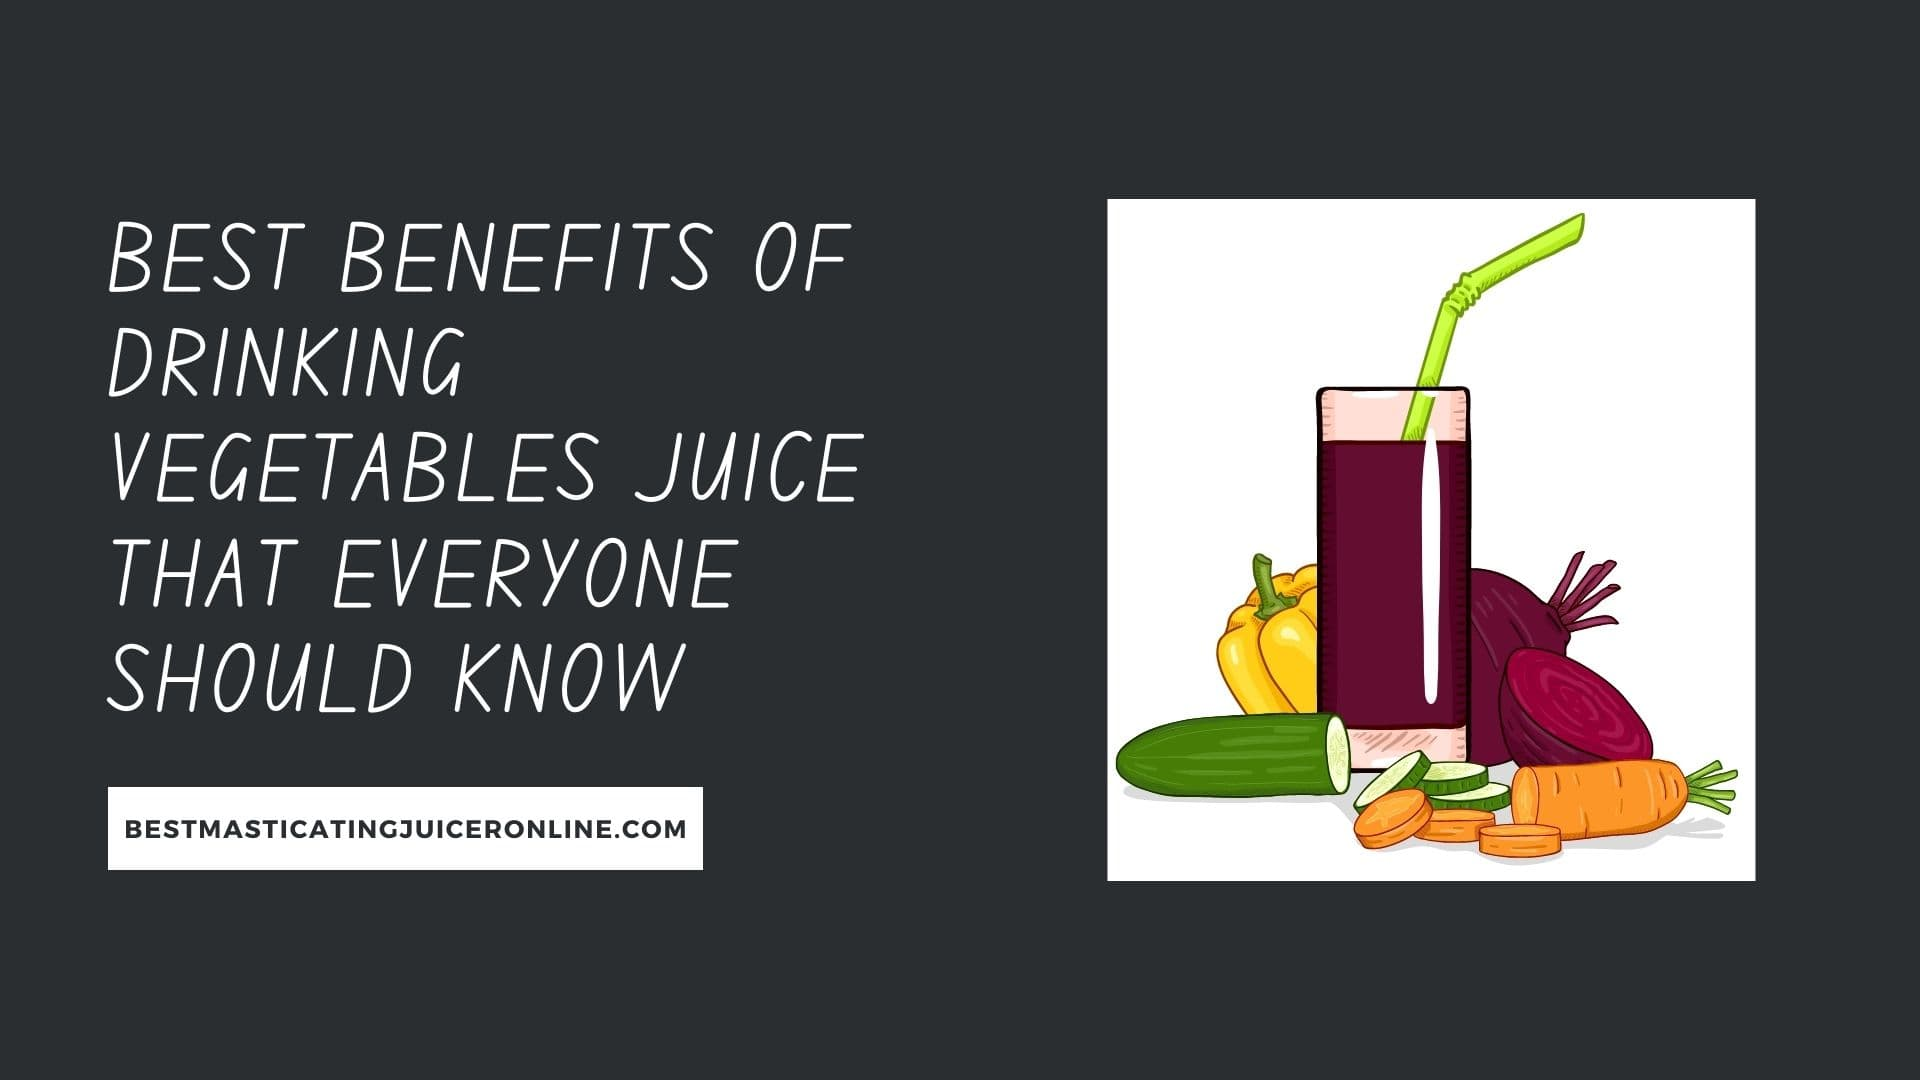 Best Benefits of Drinking Vegetables Juice that everyone should